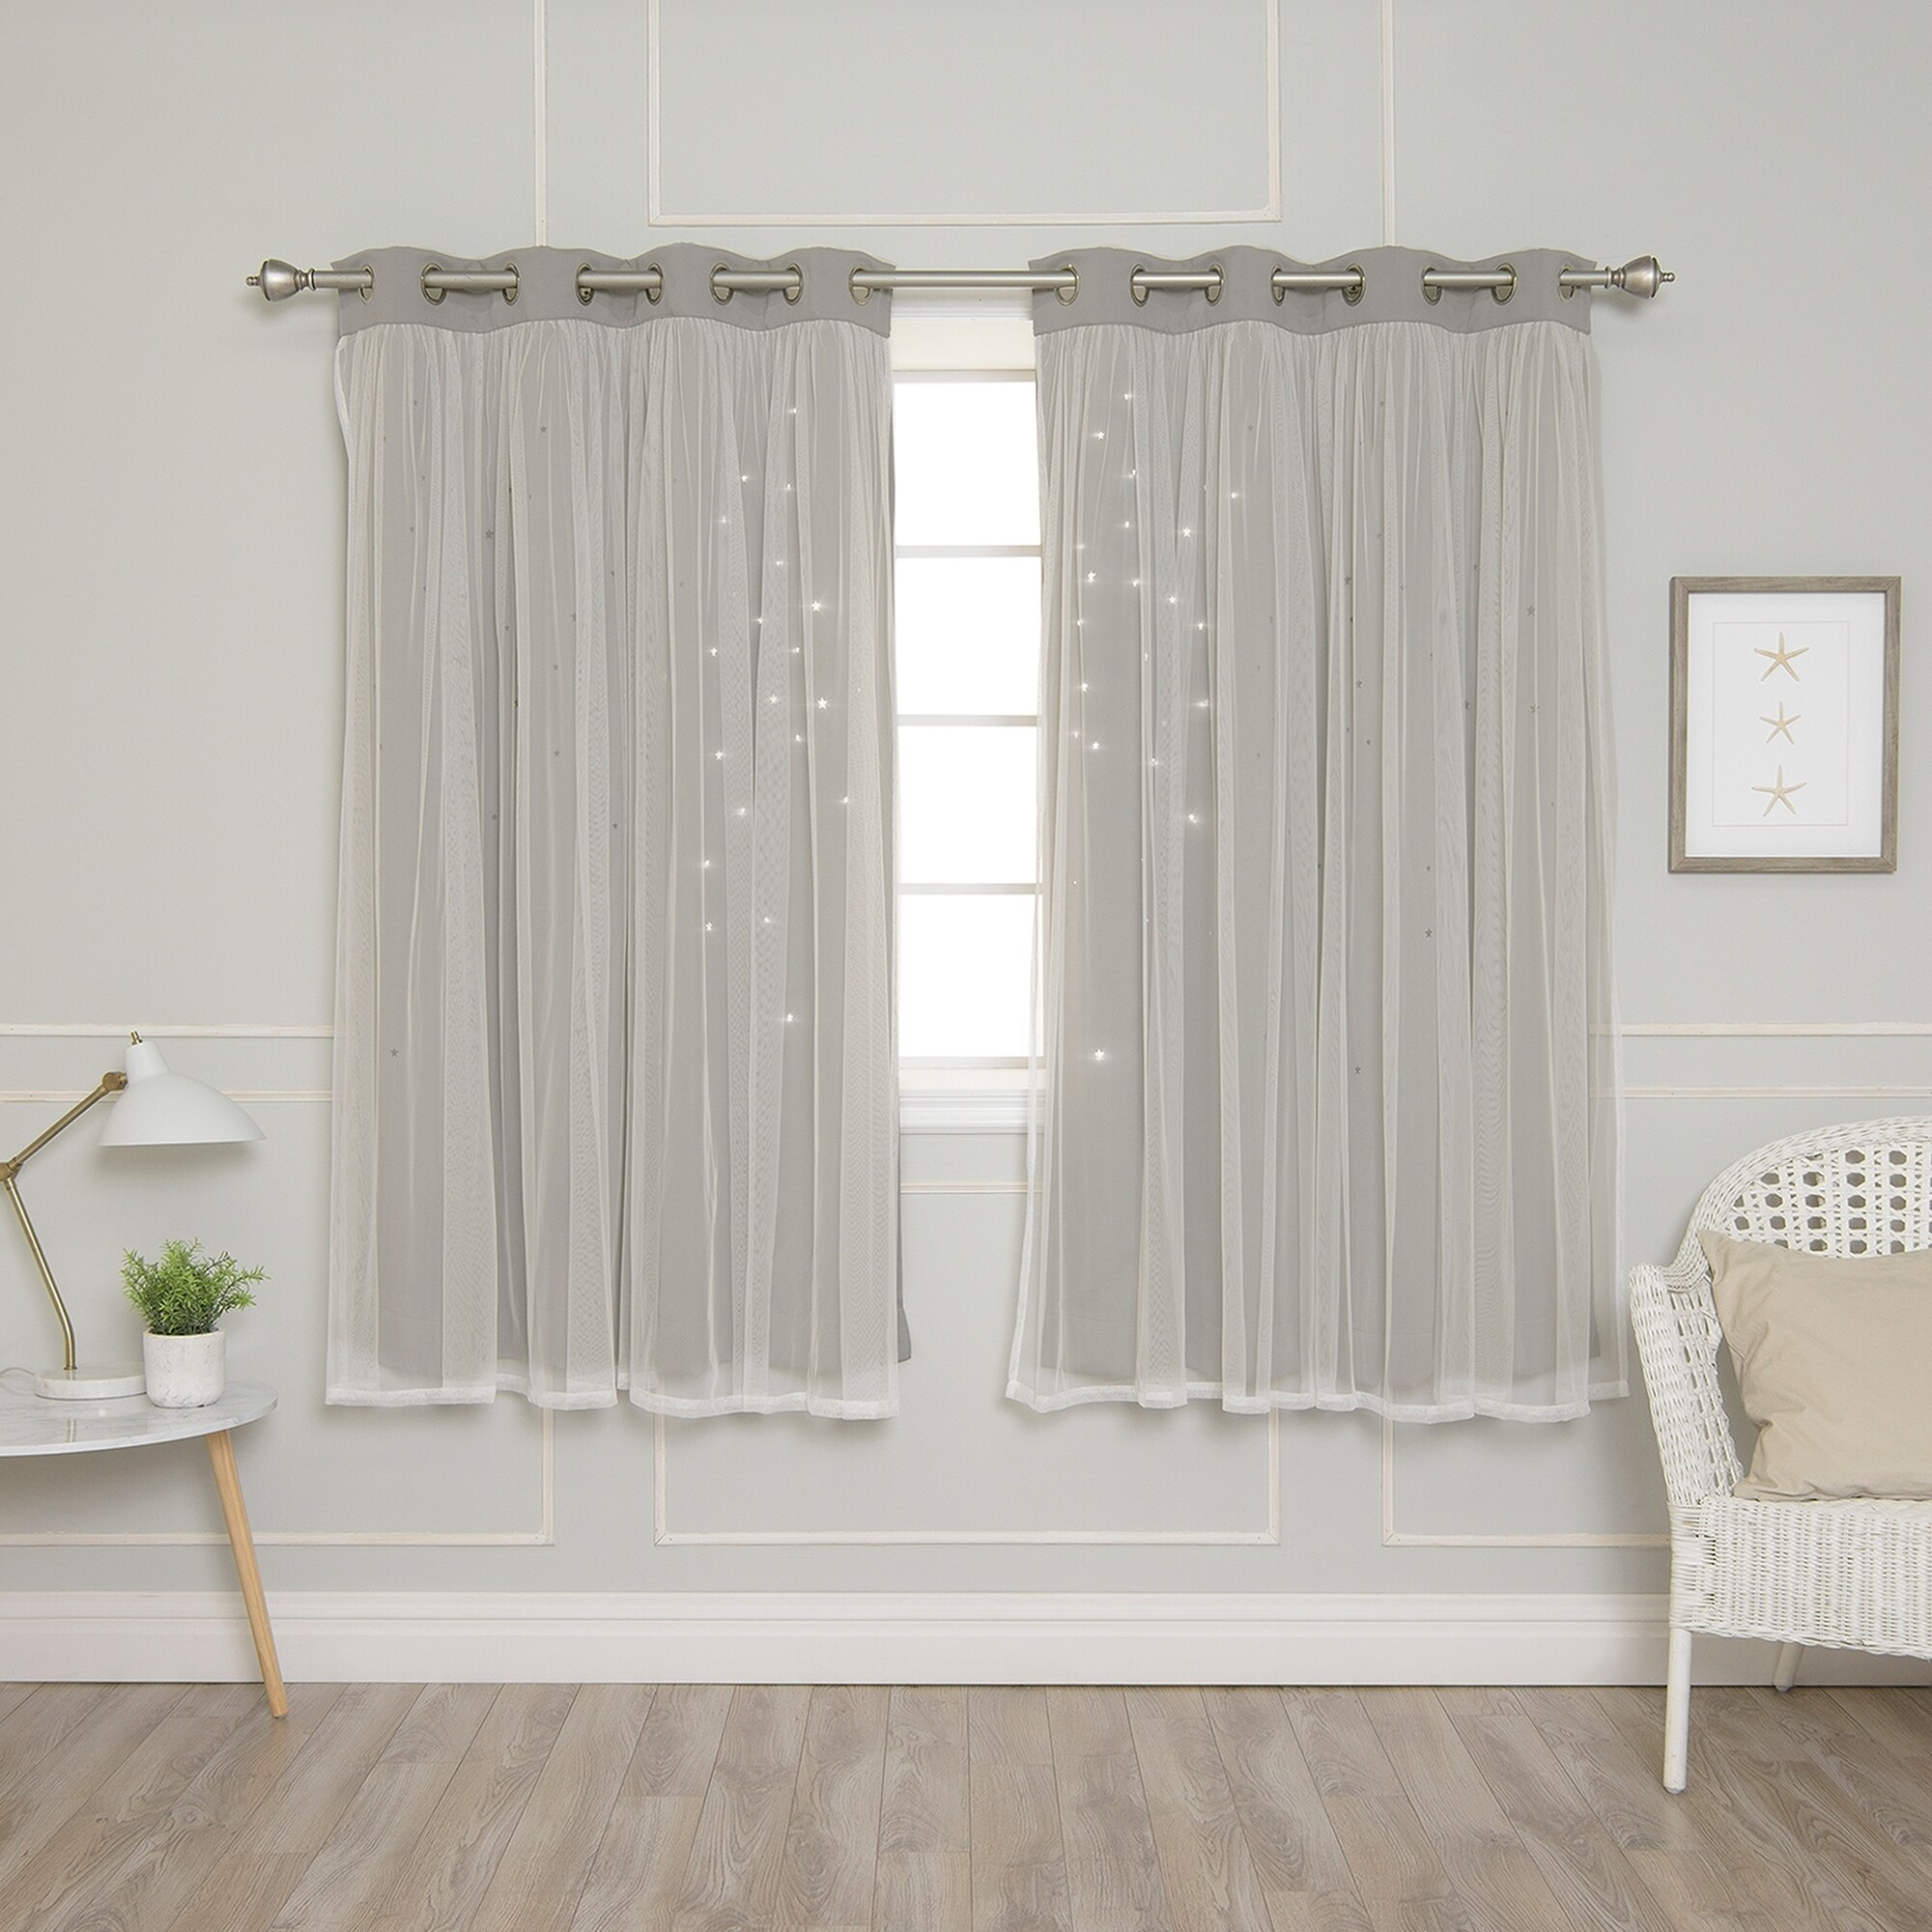 Shop Aurora Home Star Punch Tulle Overlay Blackout Curtains